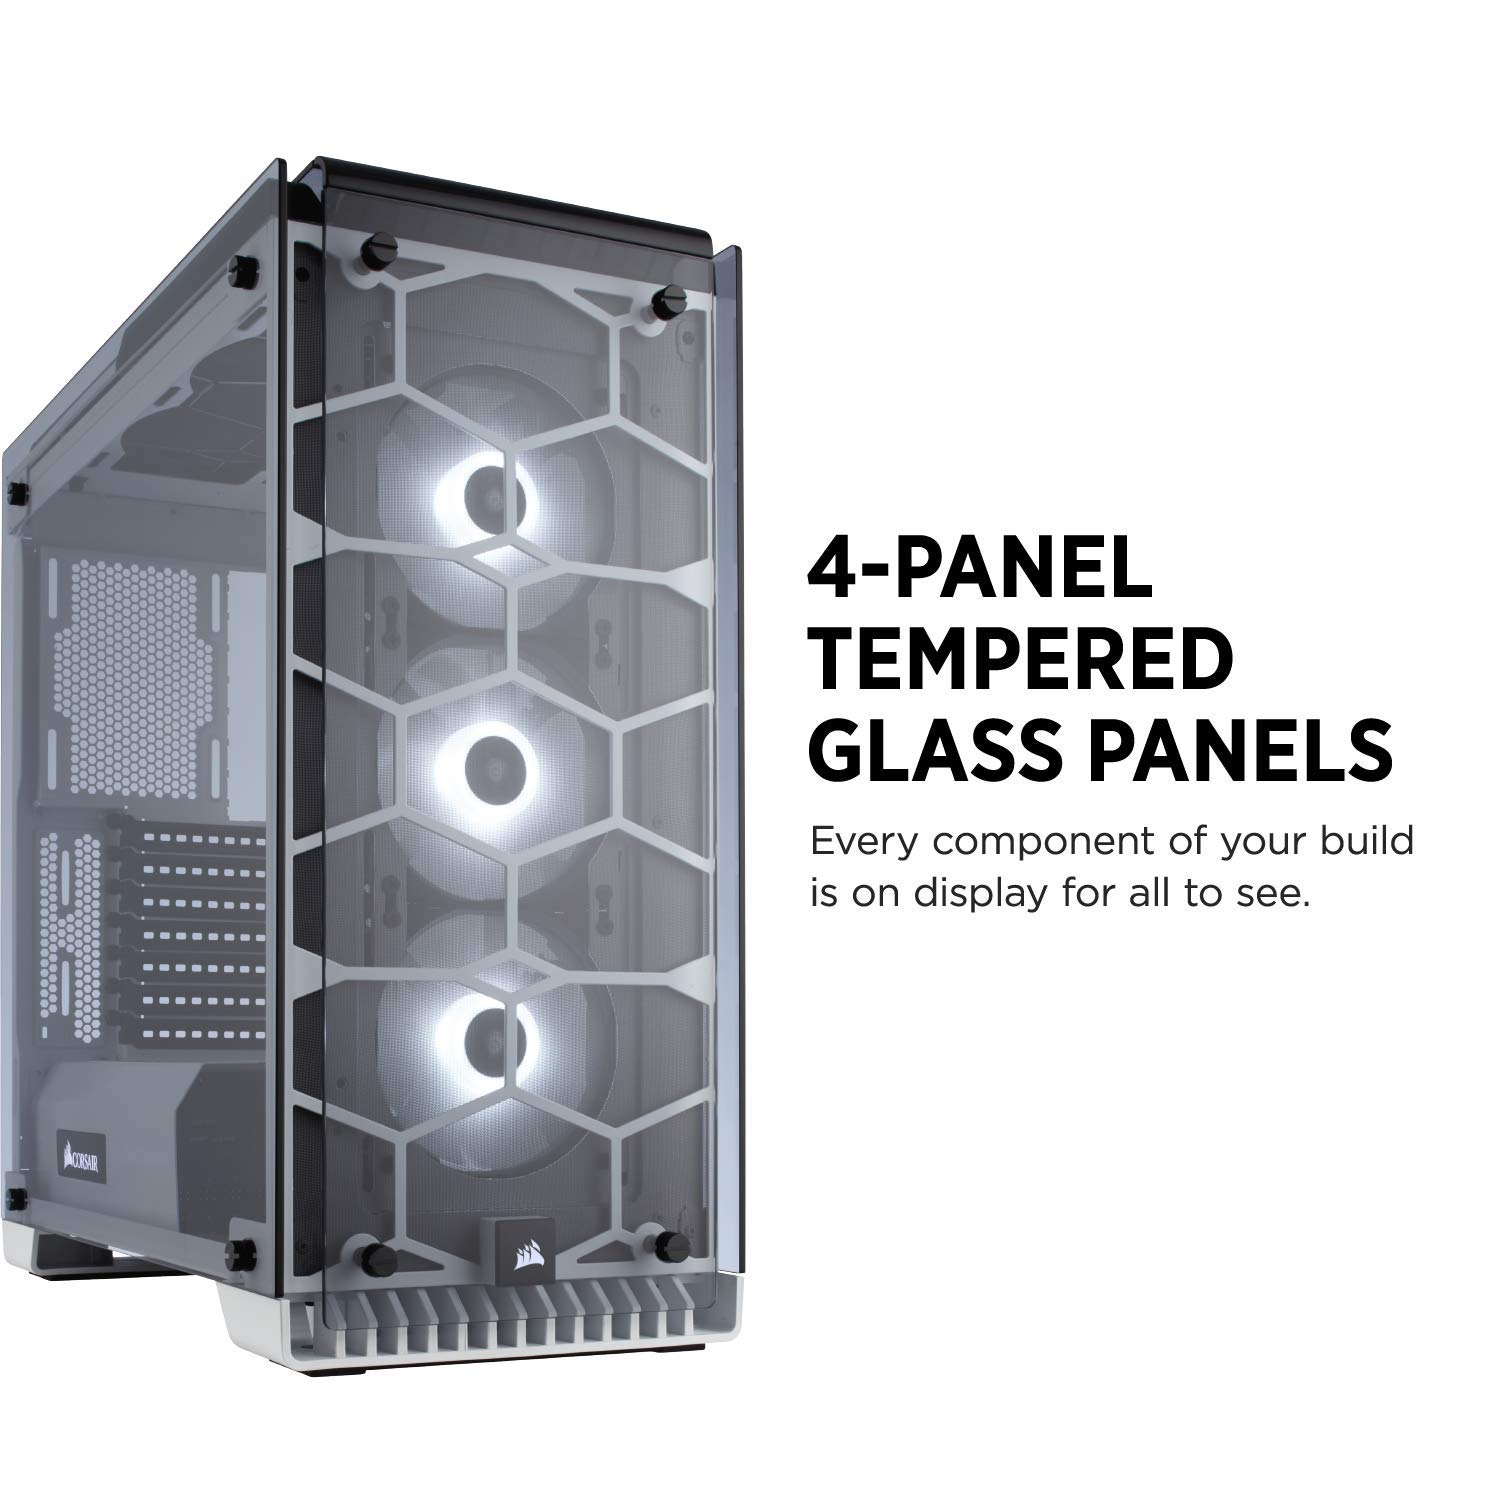 Corsair Crystal 570x Rgb Mid Tower Case 3 Fans Tempered Glass Black White Cc 9011110 Ww Computer Cases Electronics Tibs